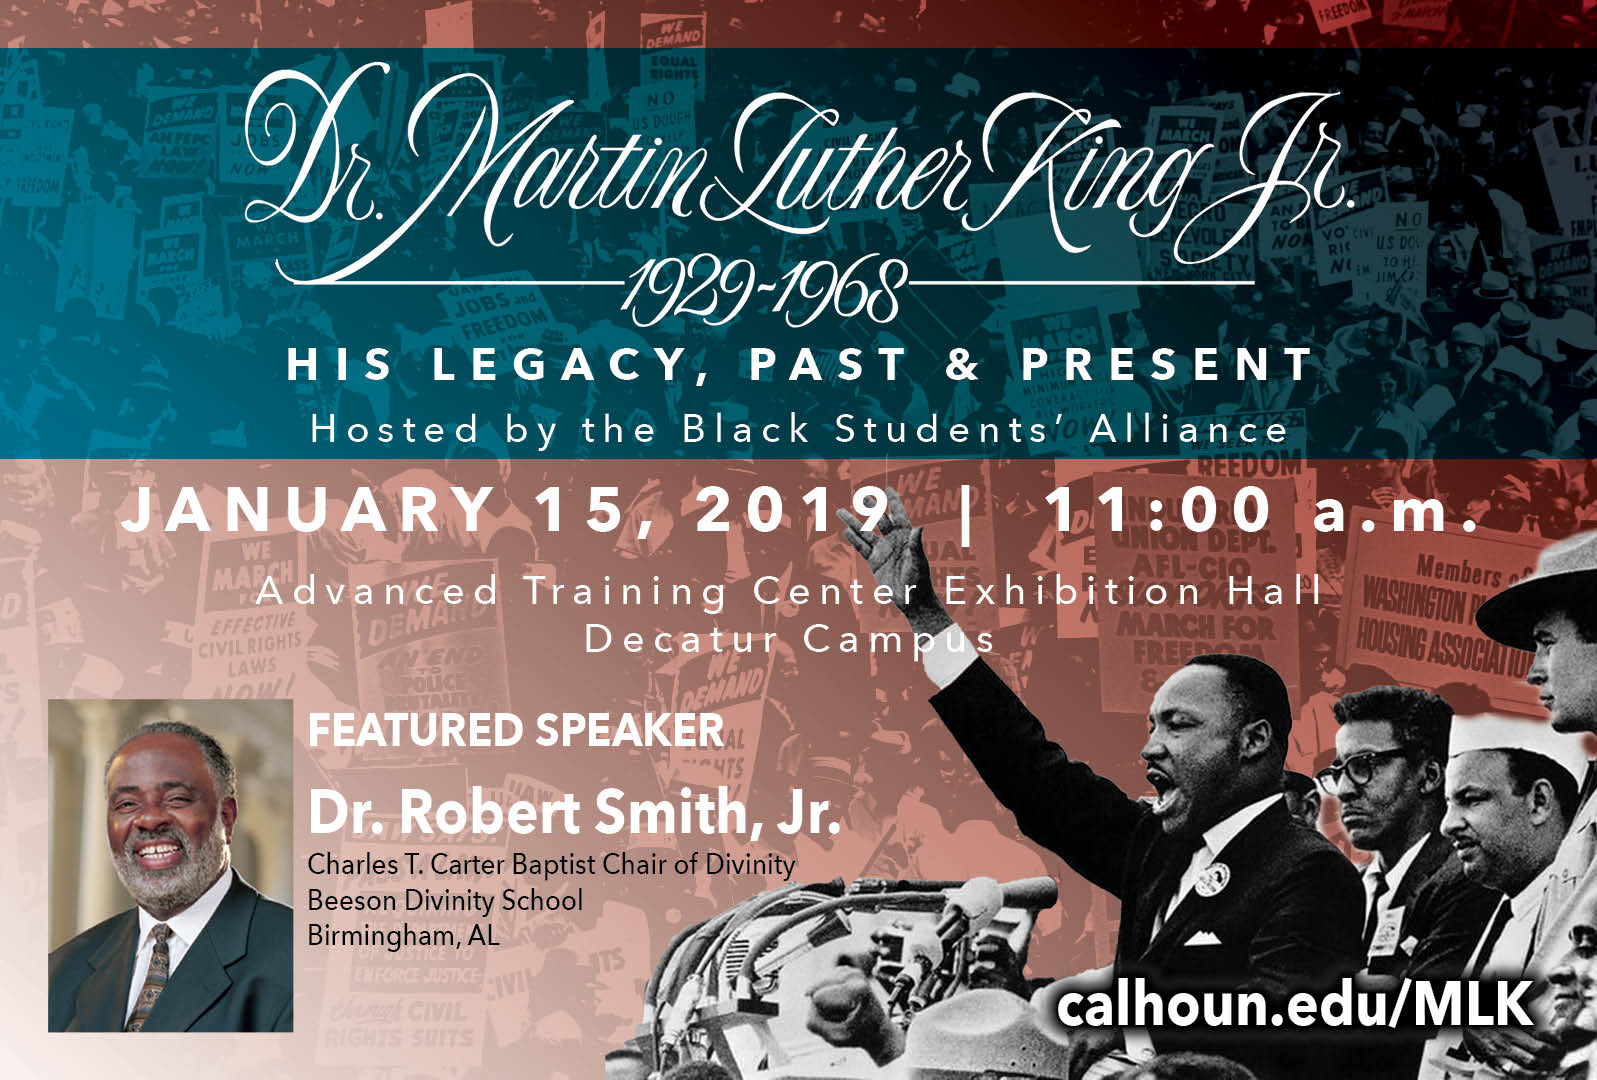 Dr. Martin Luther King Jr. His Legacy, Past & Present. hosted by the Black Students' Alliance. January 15, 2019, 11:00 AM. Advanced Training Center Exhibit Hall, Decatur Campus. Featured Speaker Dr. Robert Smith Jr.